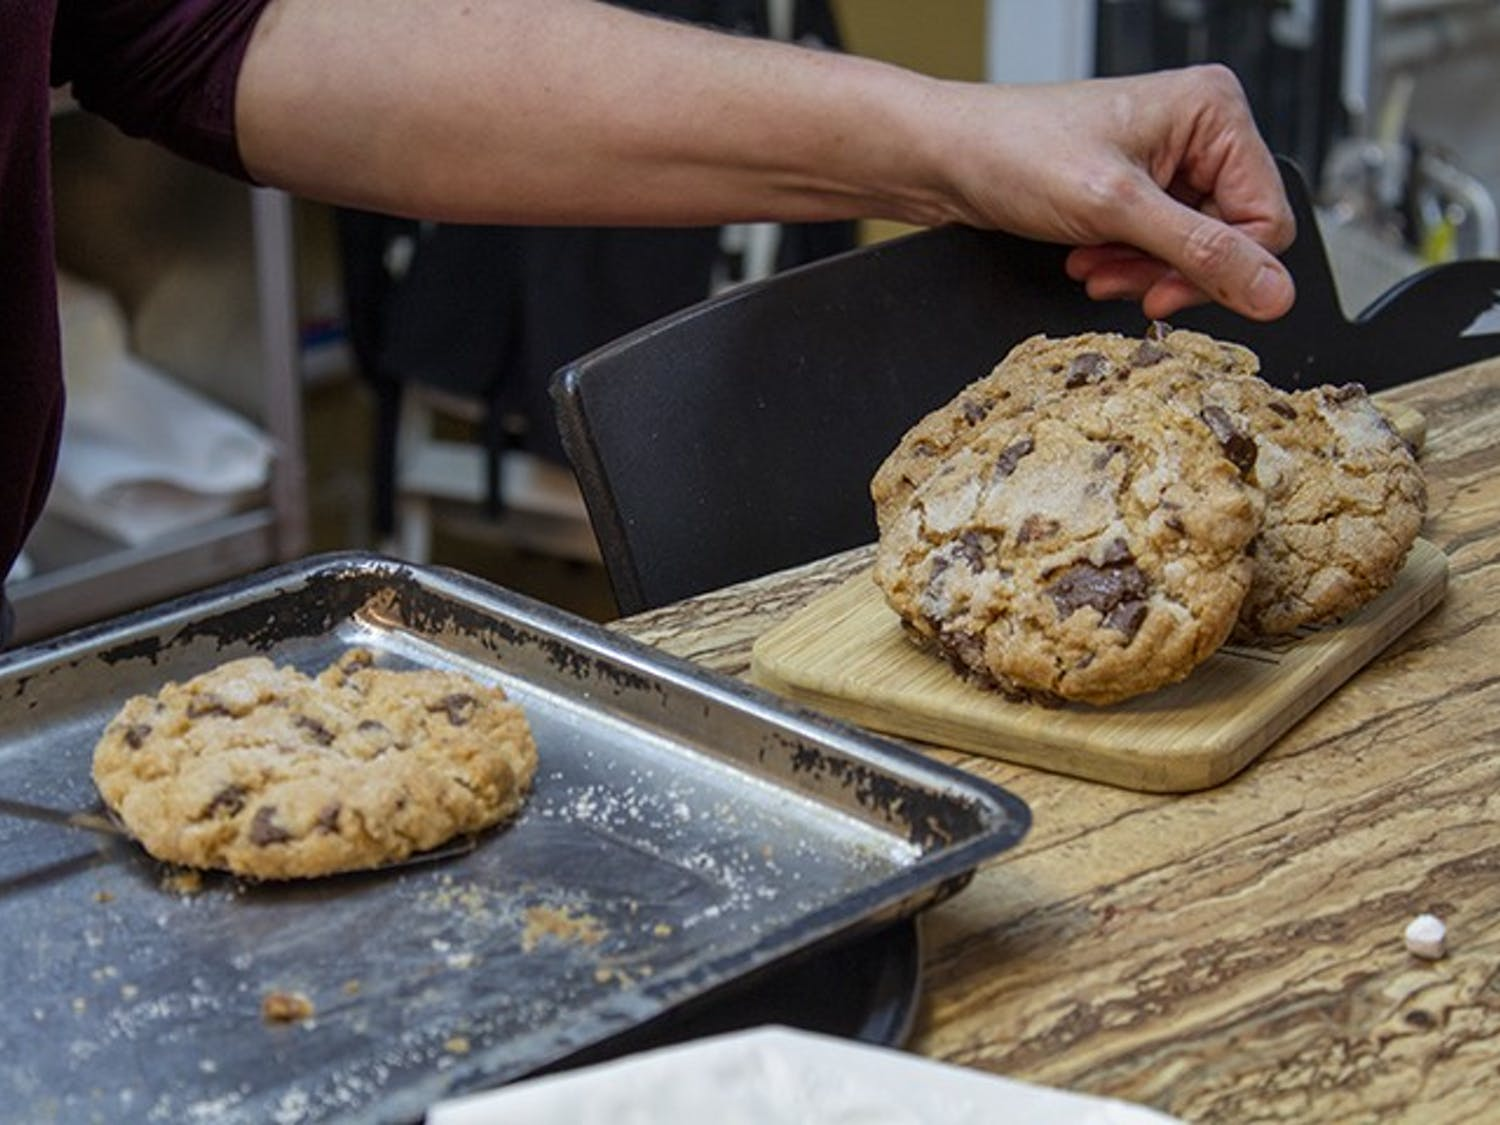 The Local Buzz owner Stephanie Bridgers prepares freshly baked, gluten-free lavender chocolate chip cookies to be sold. The Local Buzz is located on Harden Street in Five Points.